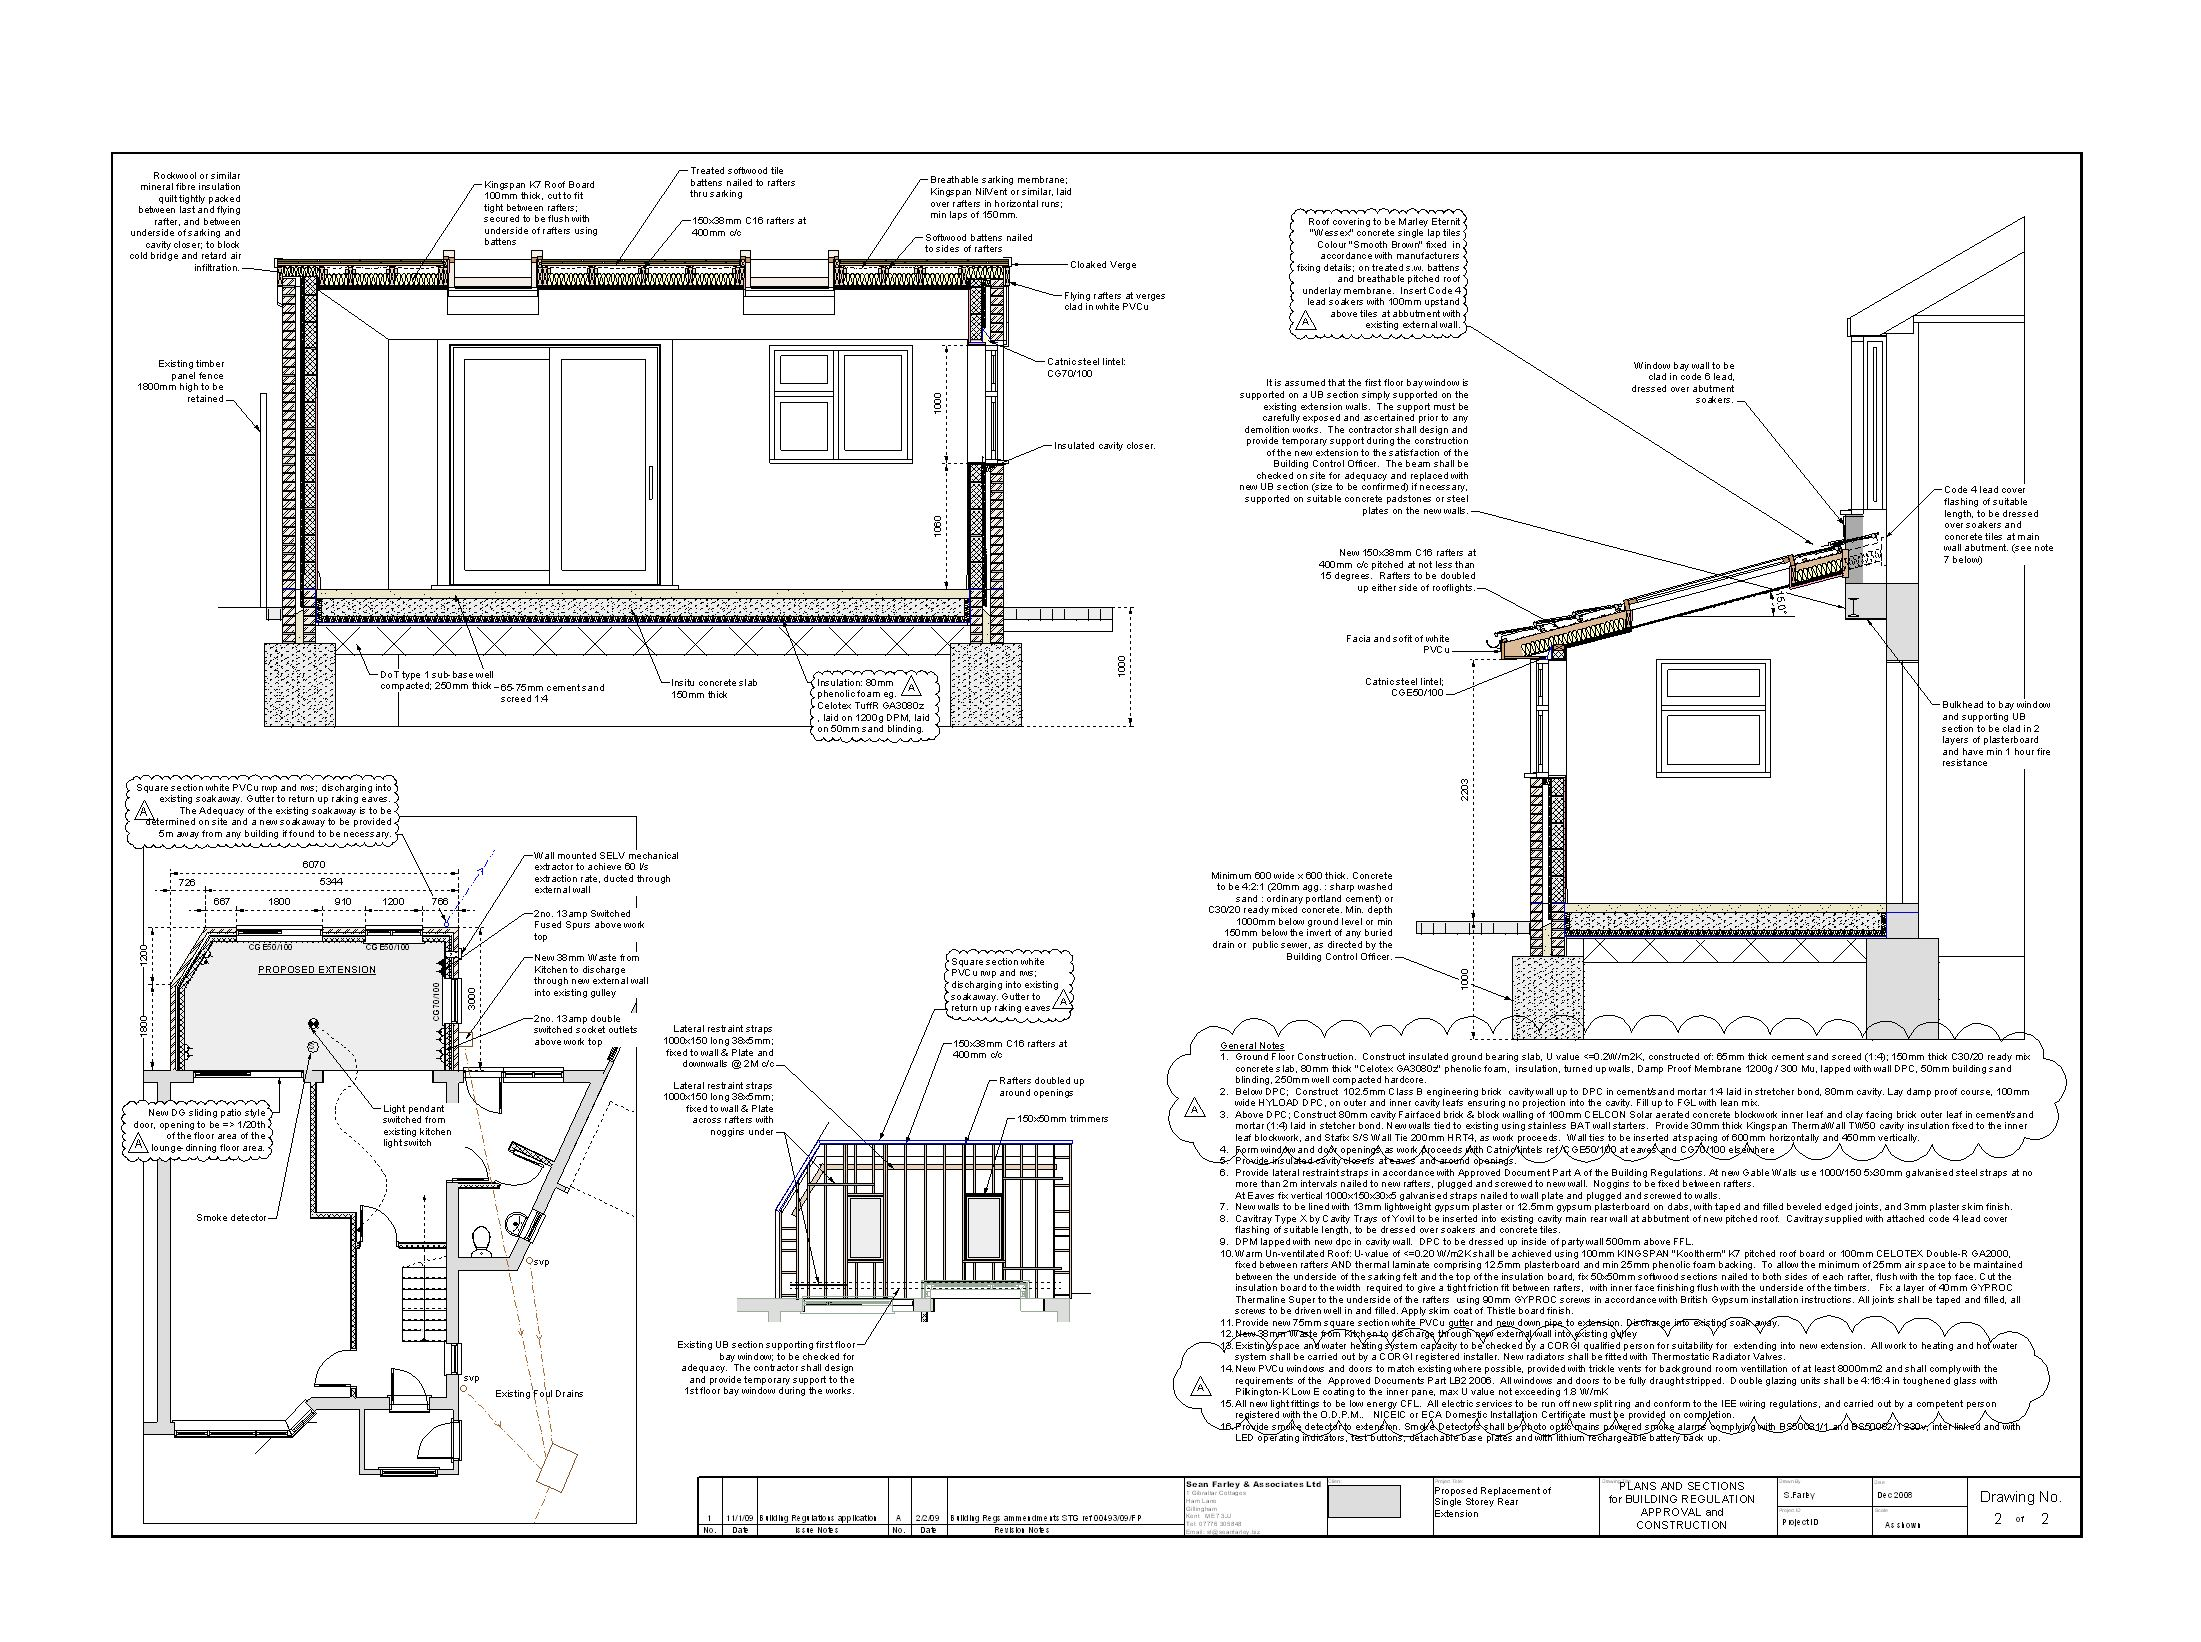 Medway Kitchen Extension Building Regs Dwg Jpg 2201 1642 Floor Plans Building Resources